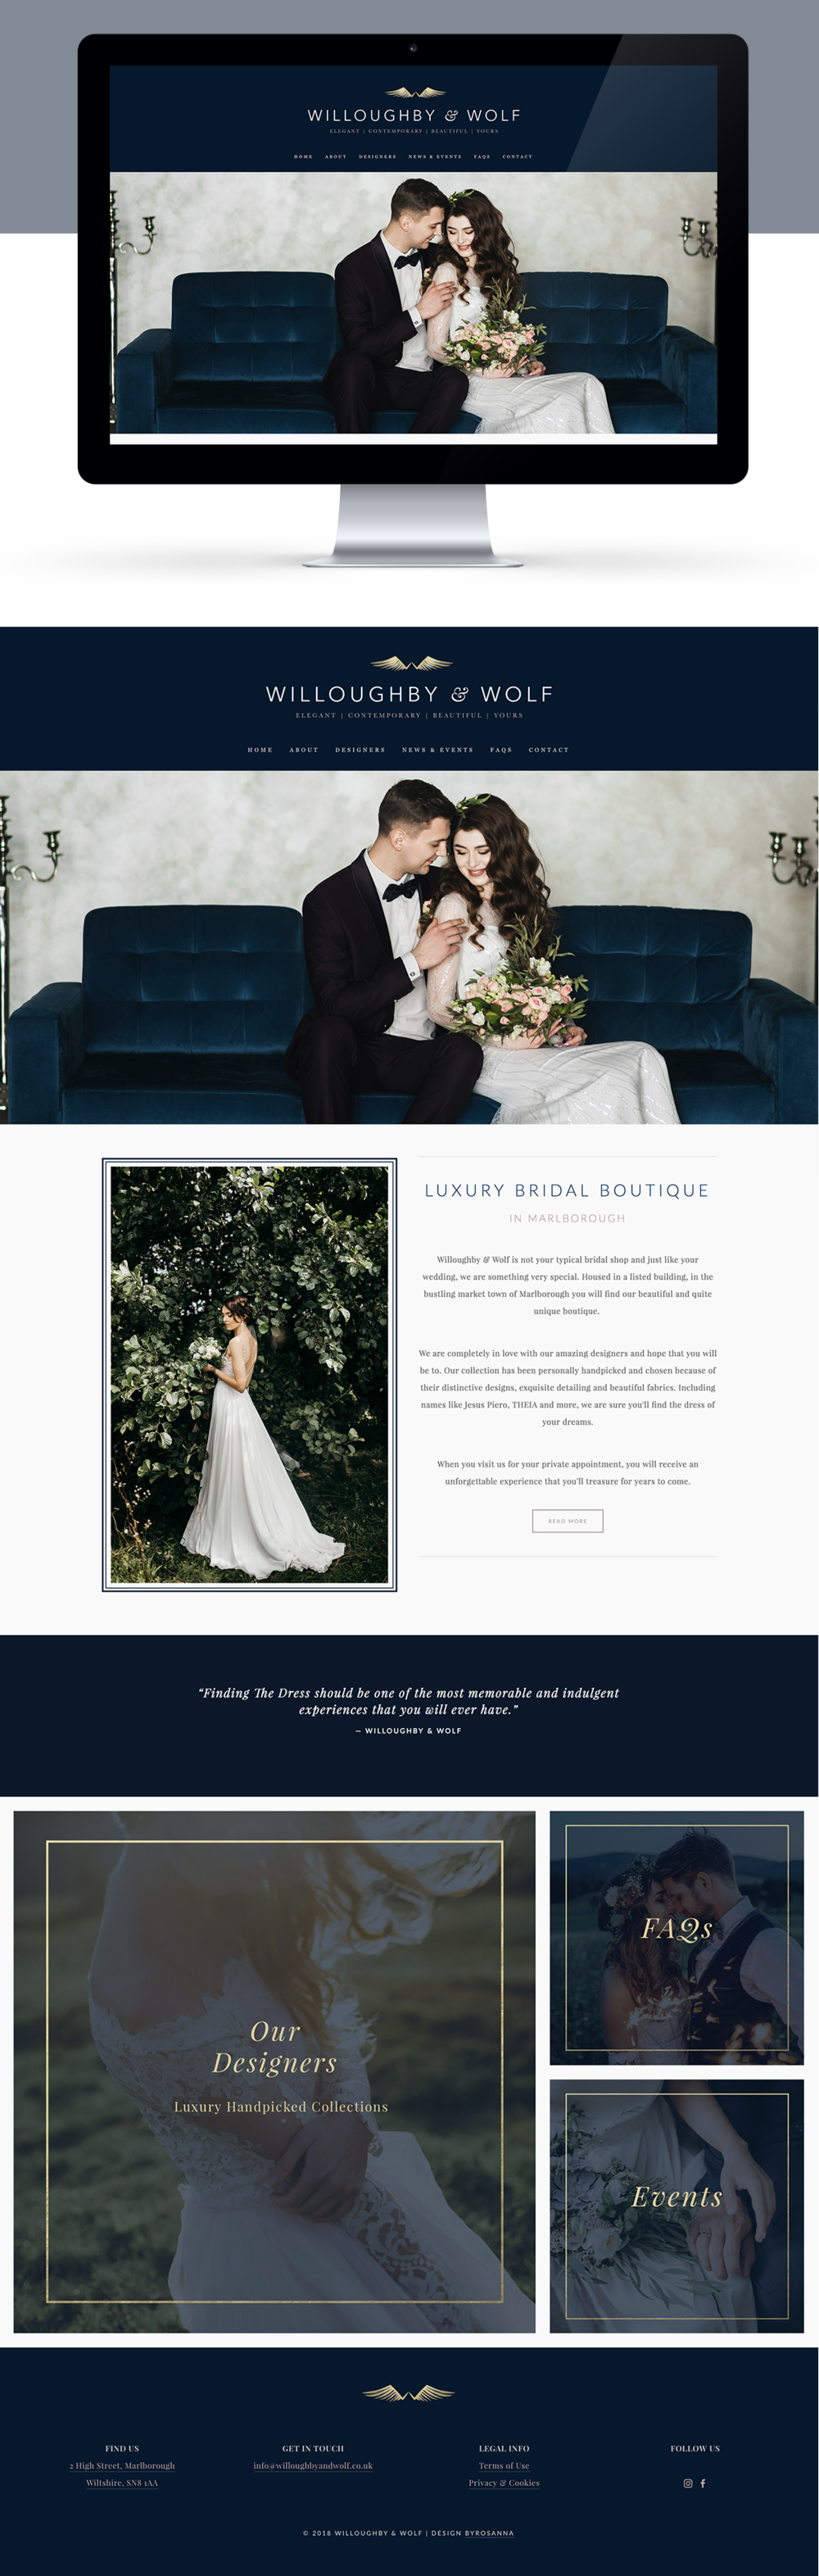 Willoughby and Wolf Squarespace website design